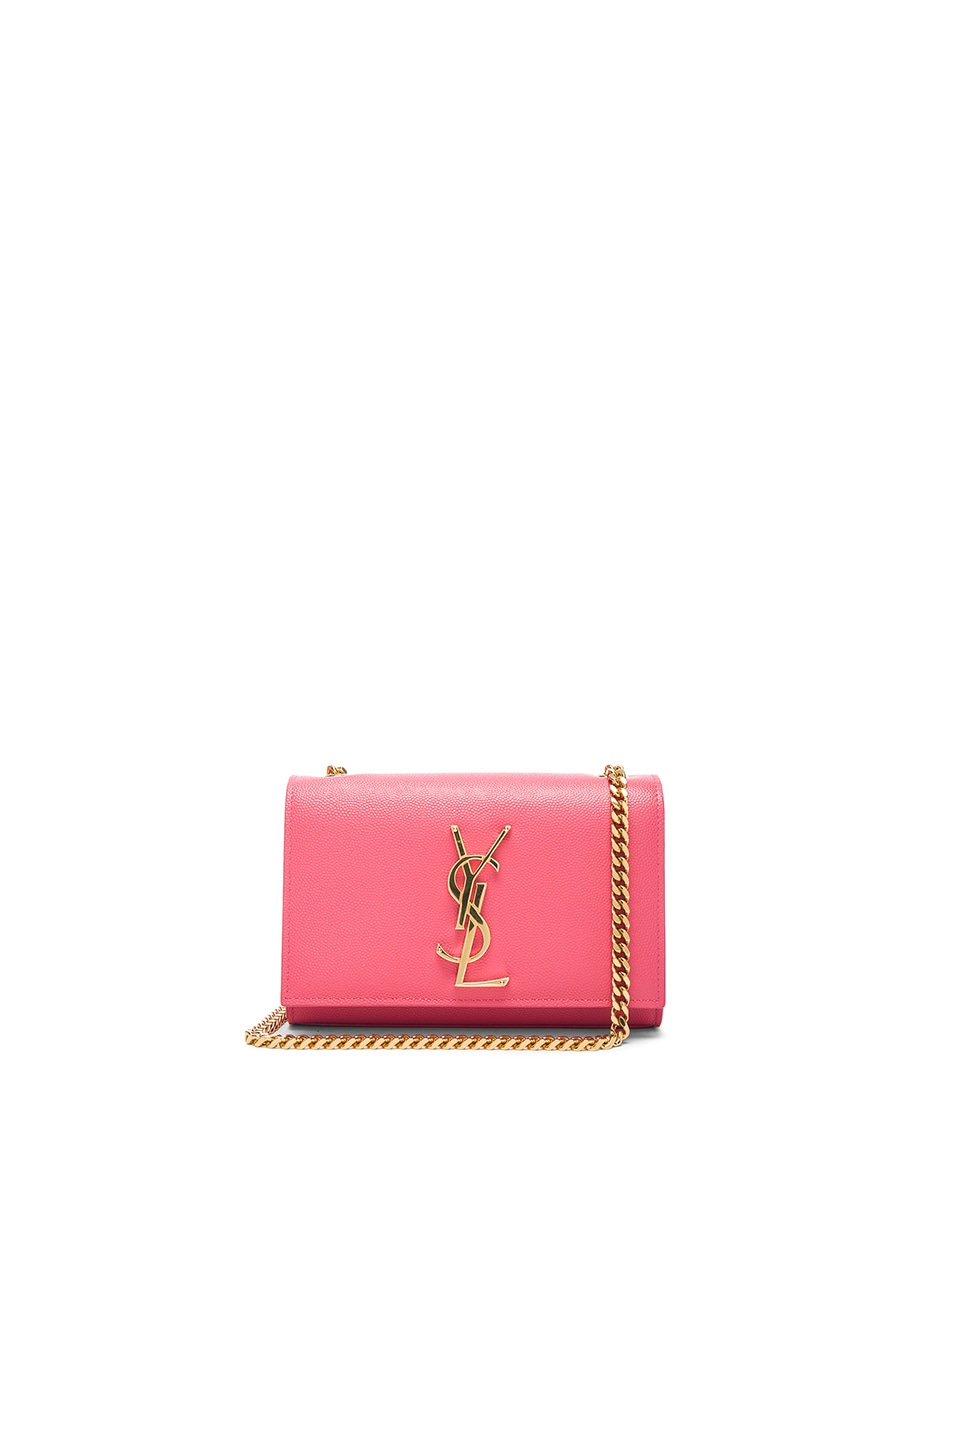 Image 1 of Saint Laurent Small Monogramme Chain Bag in Rose Clair